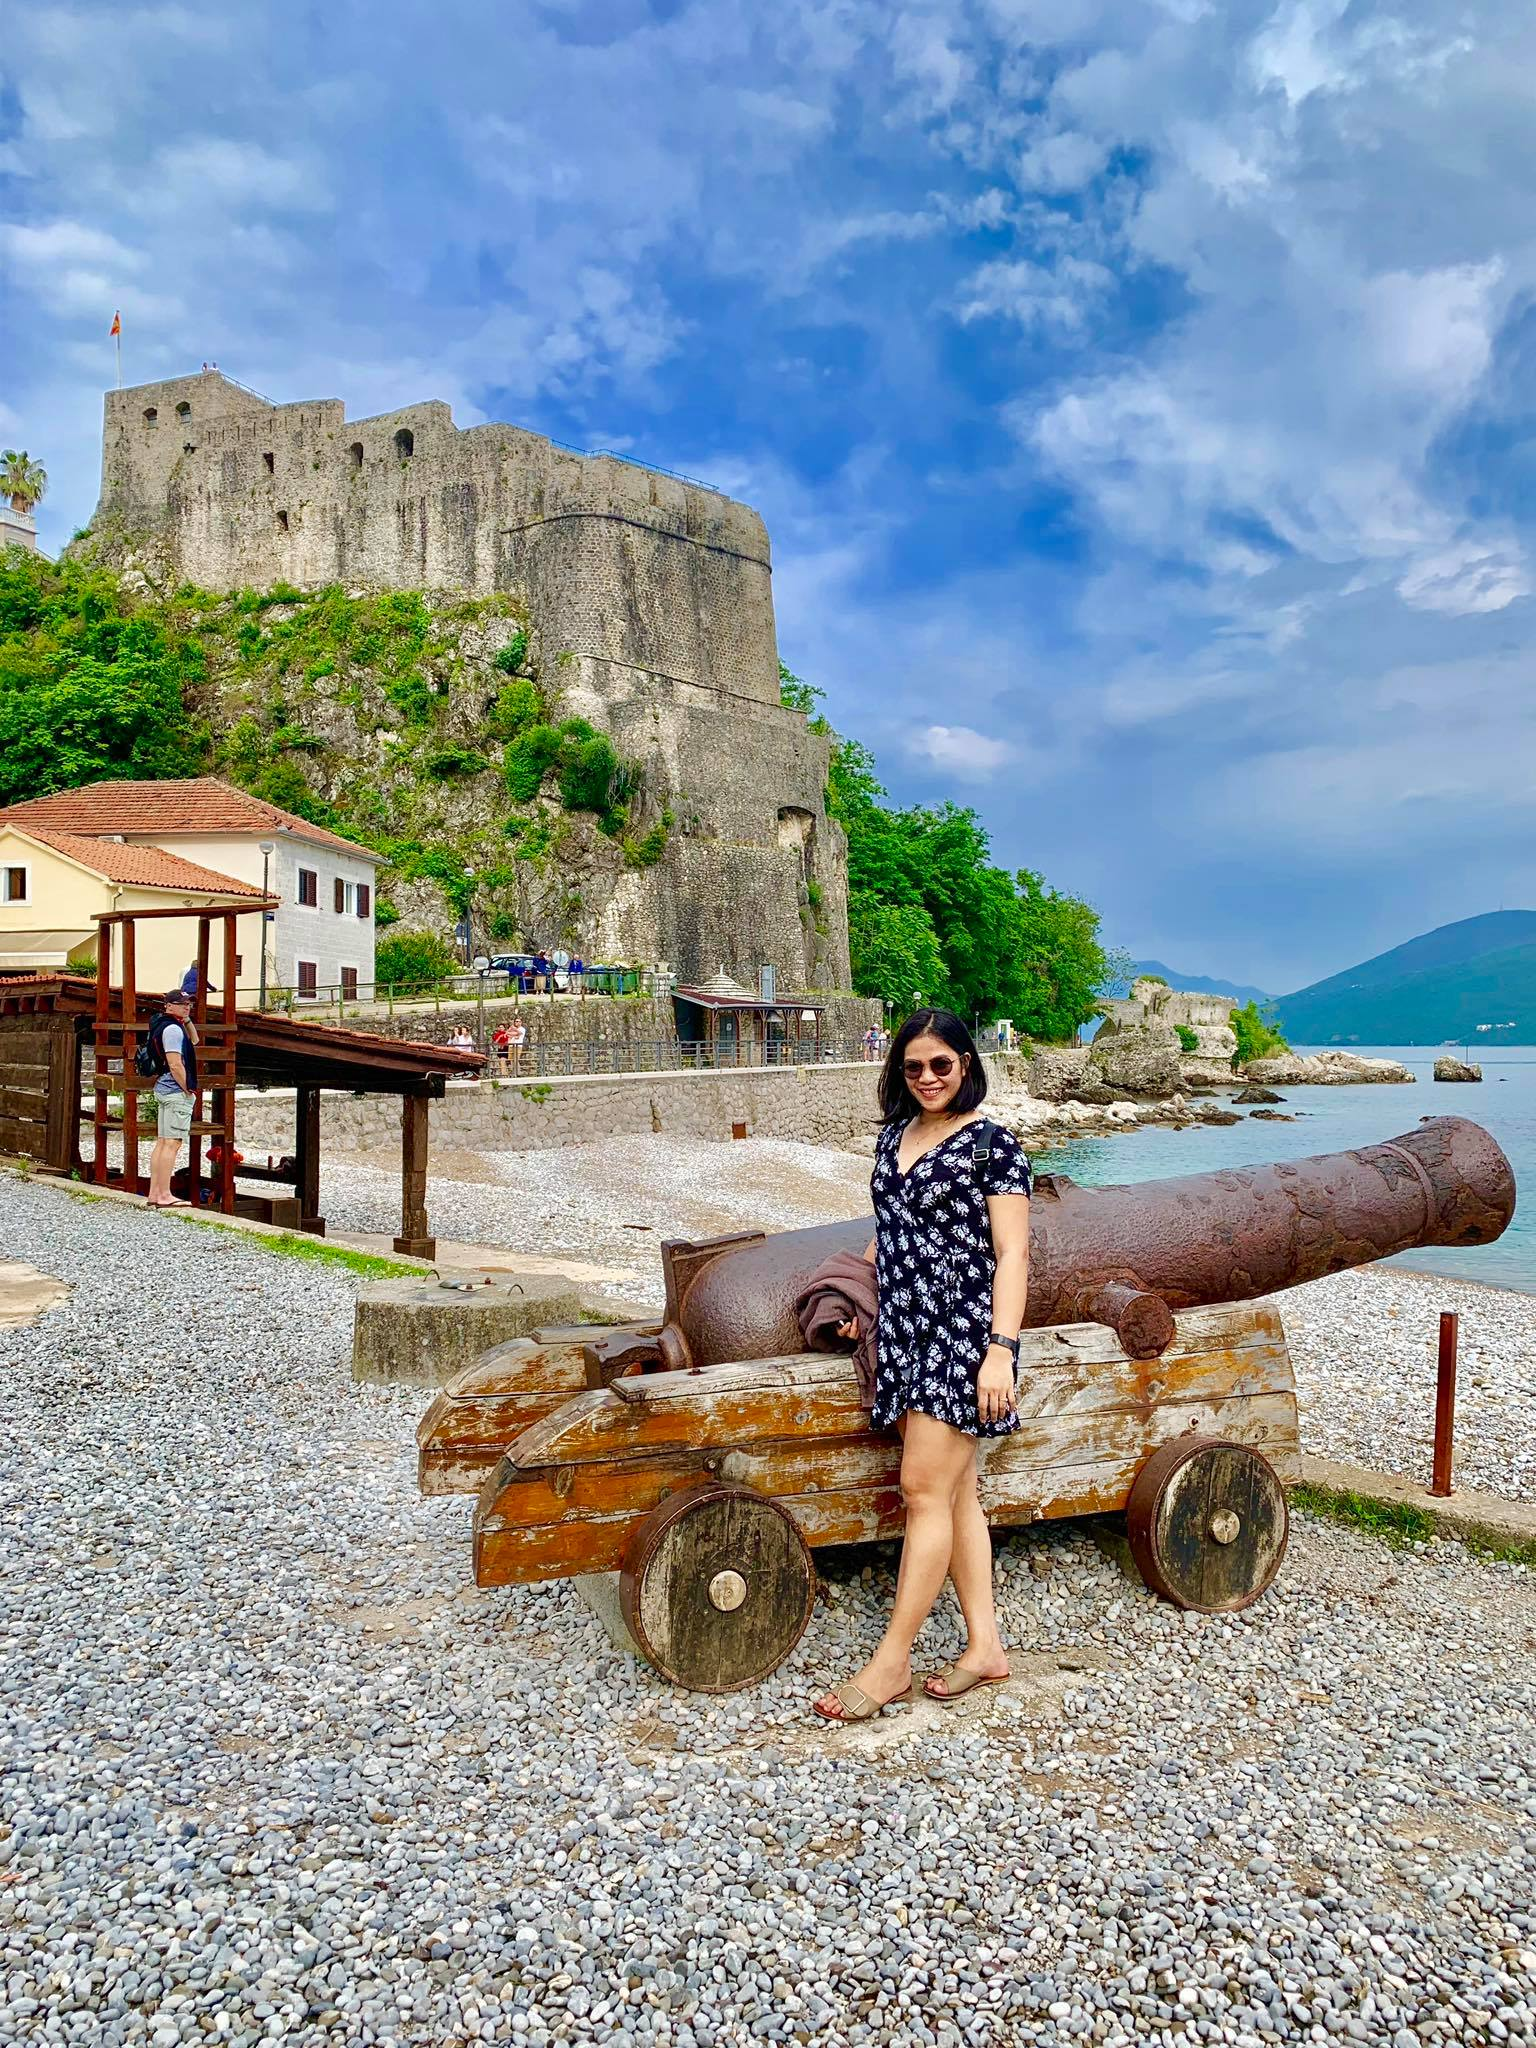 Expat Life in Montenegro Day 3 We have our first visitor already in our new home here in Herceg Novi12.jpg